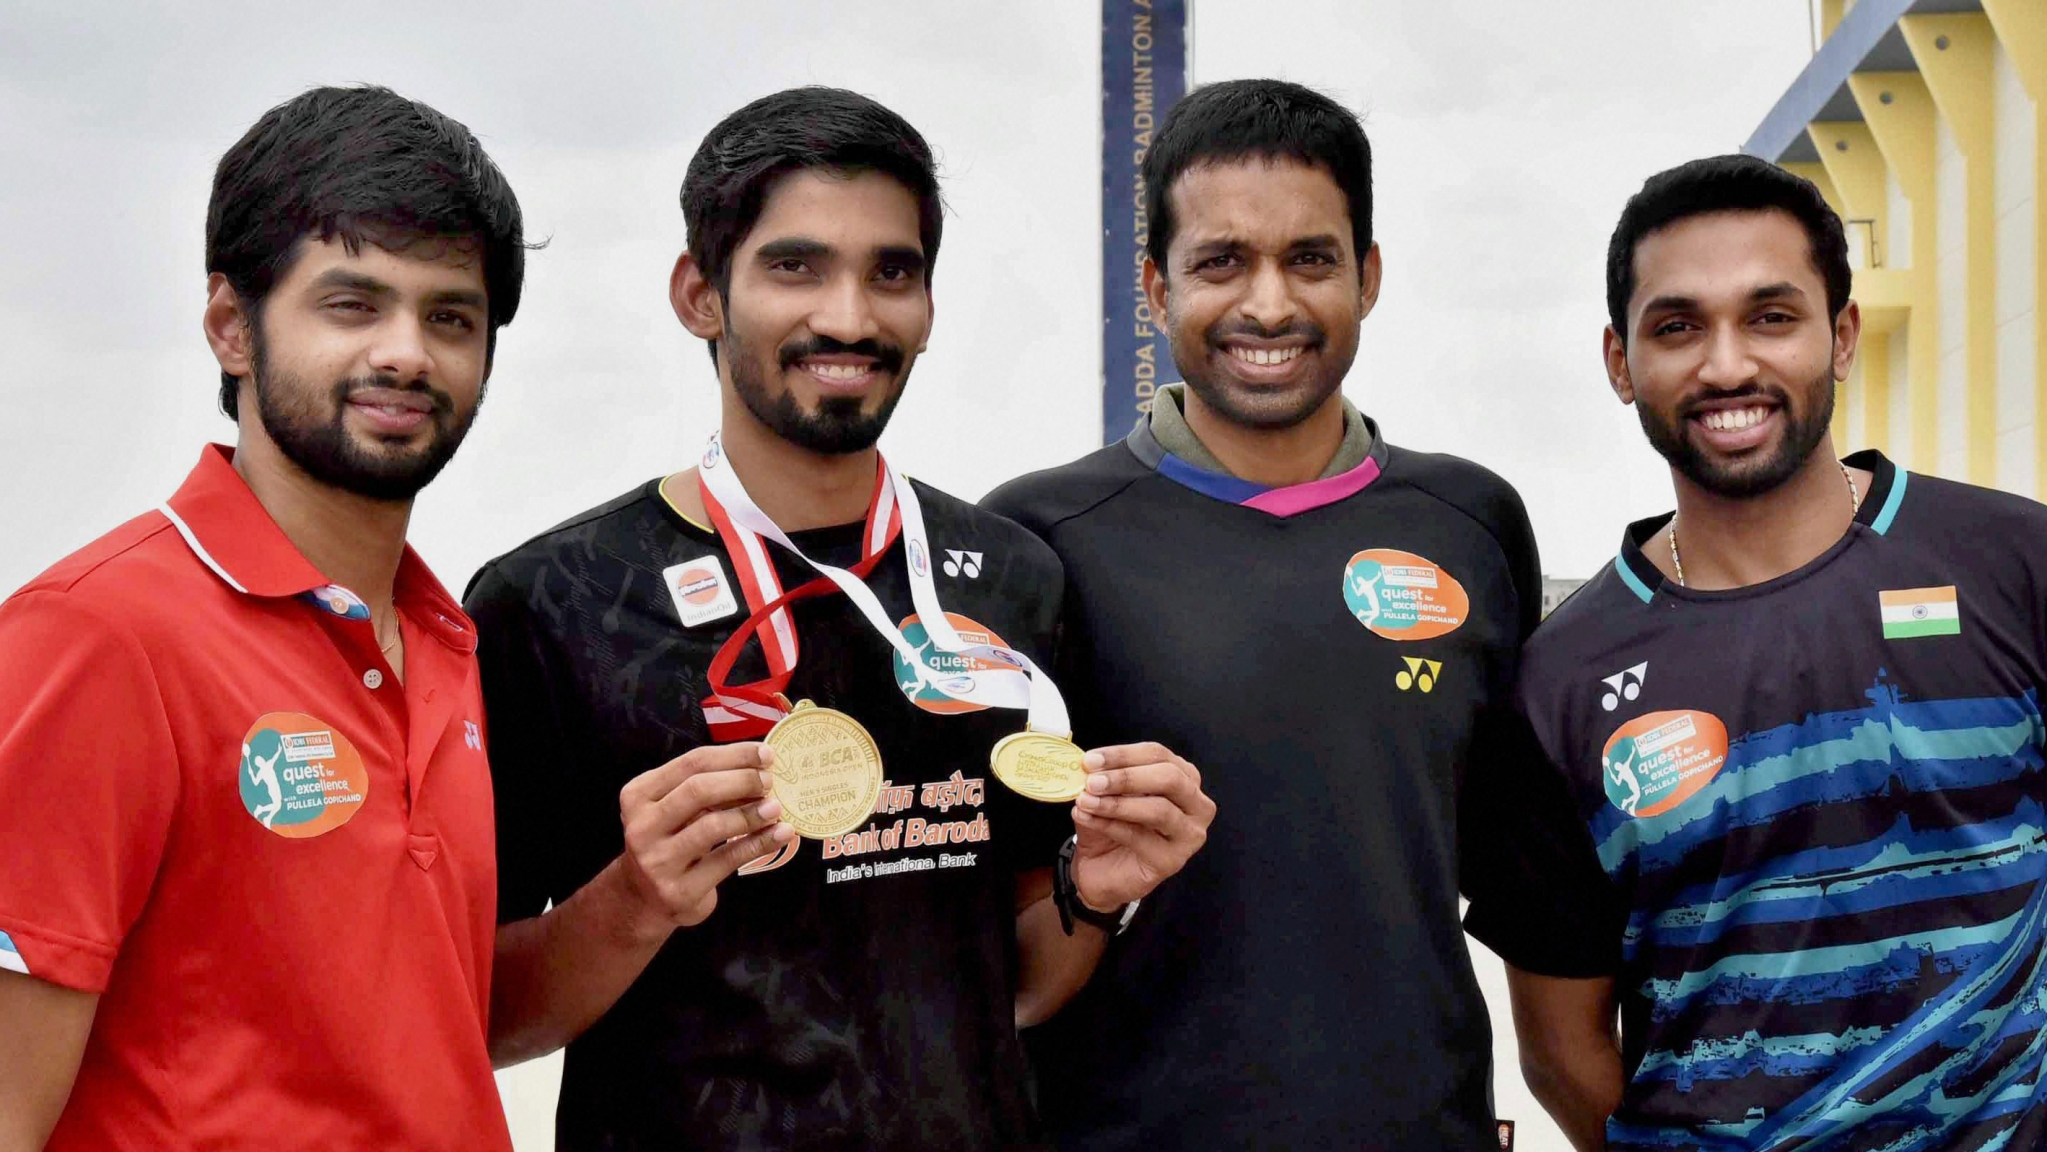 Srikanth & Co Can Make 2017 India s Year in Badminton The Quint